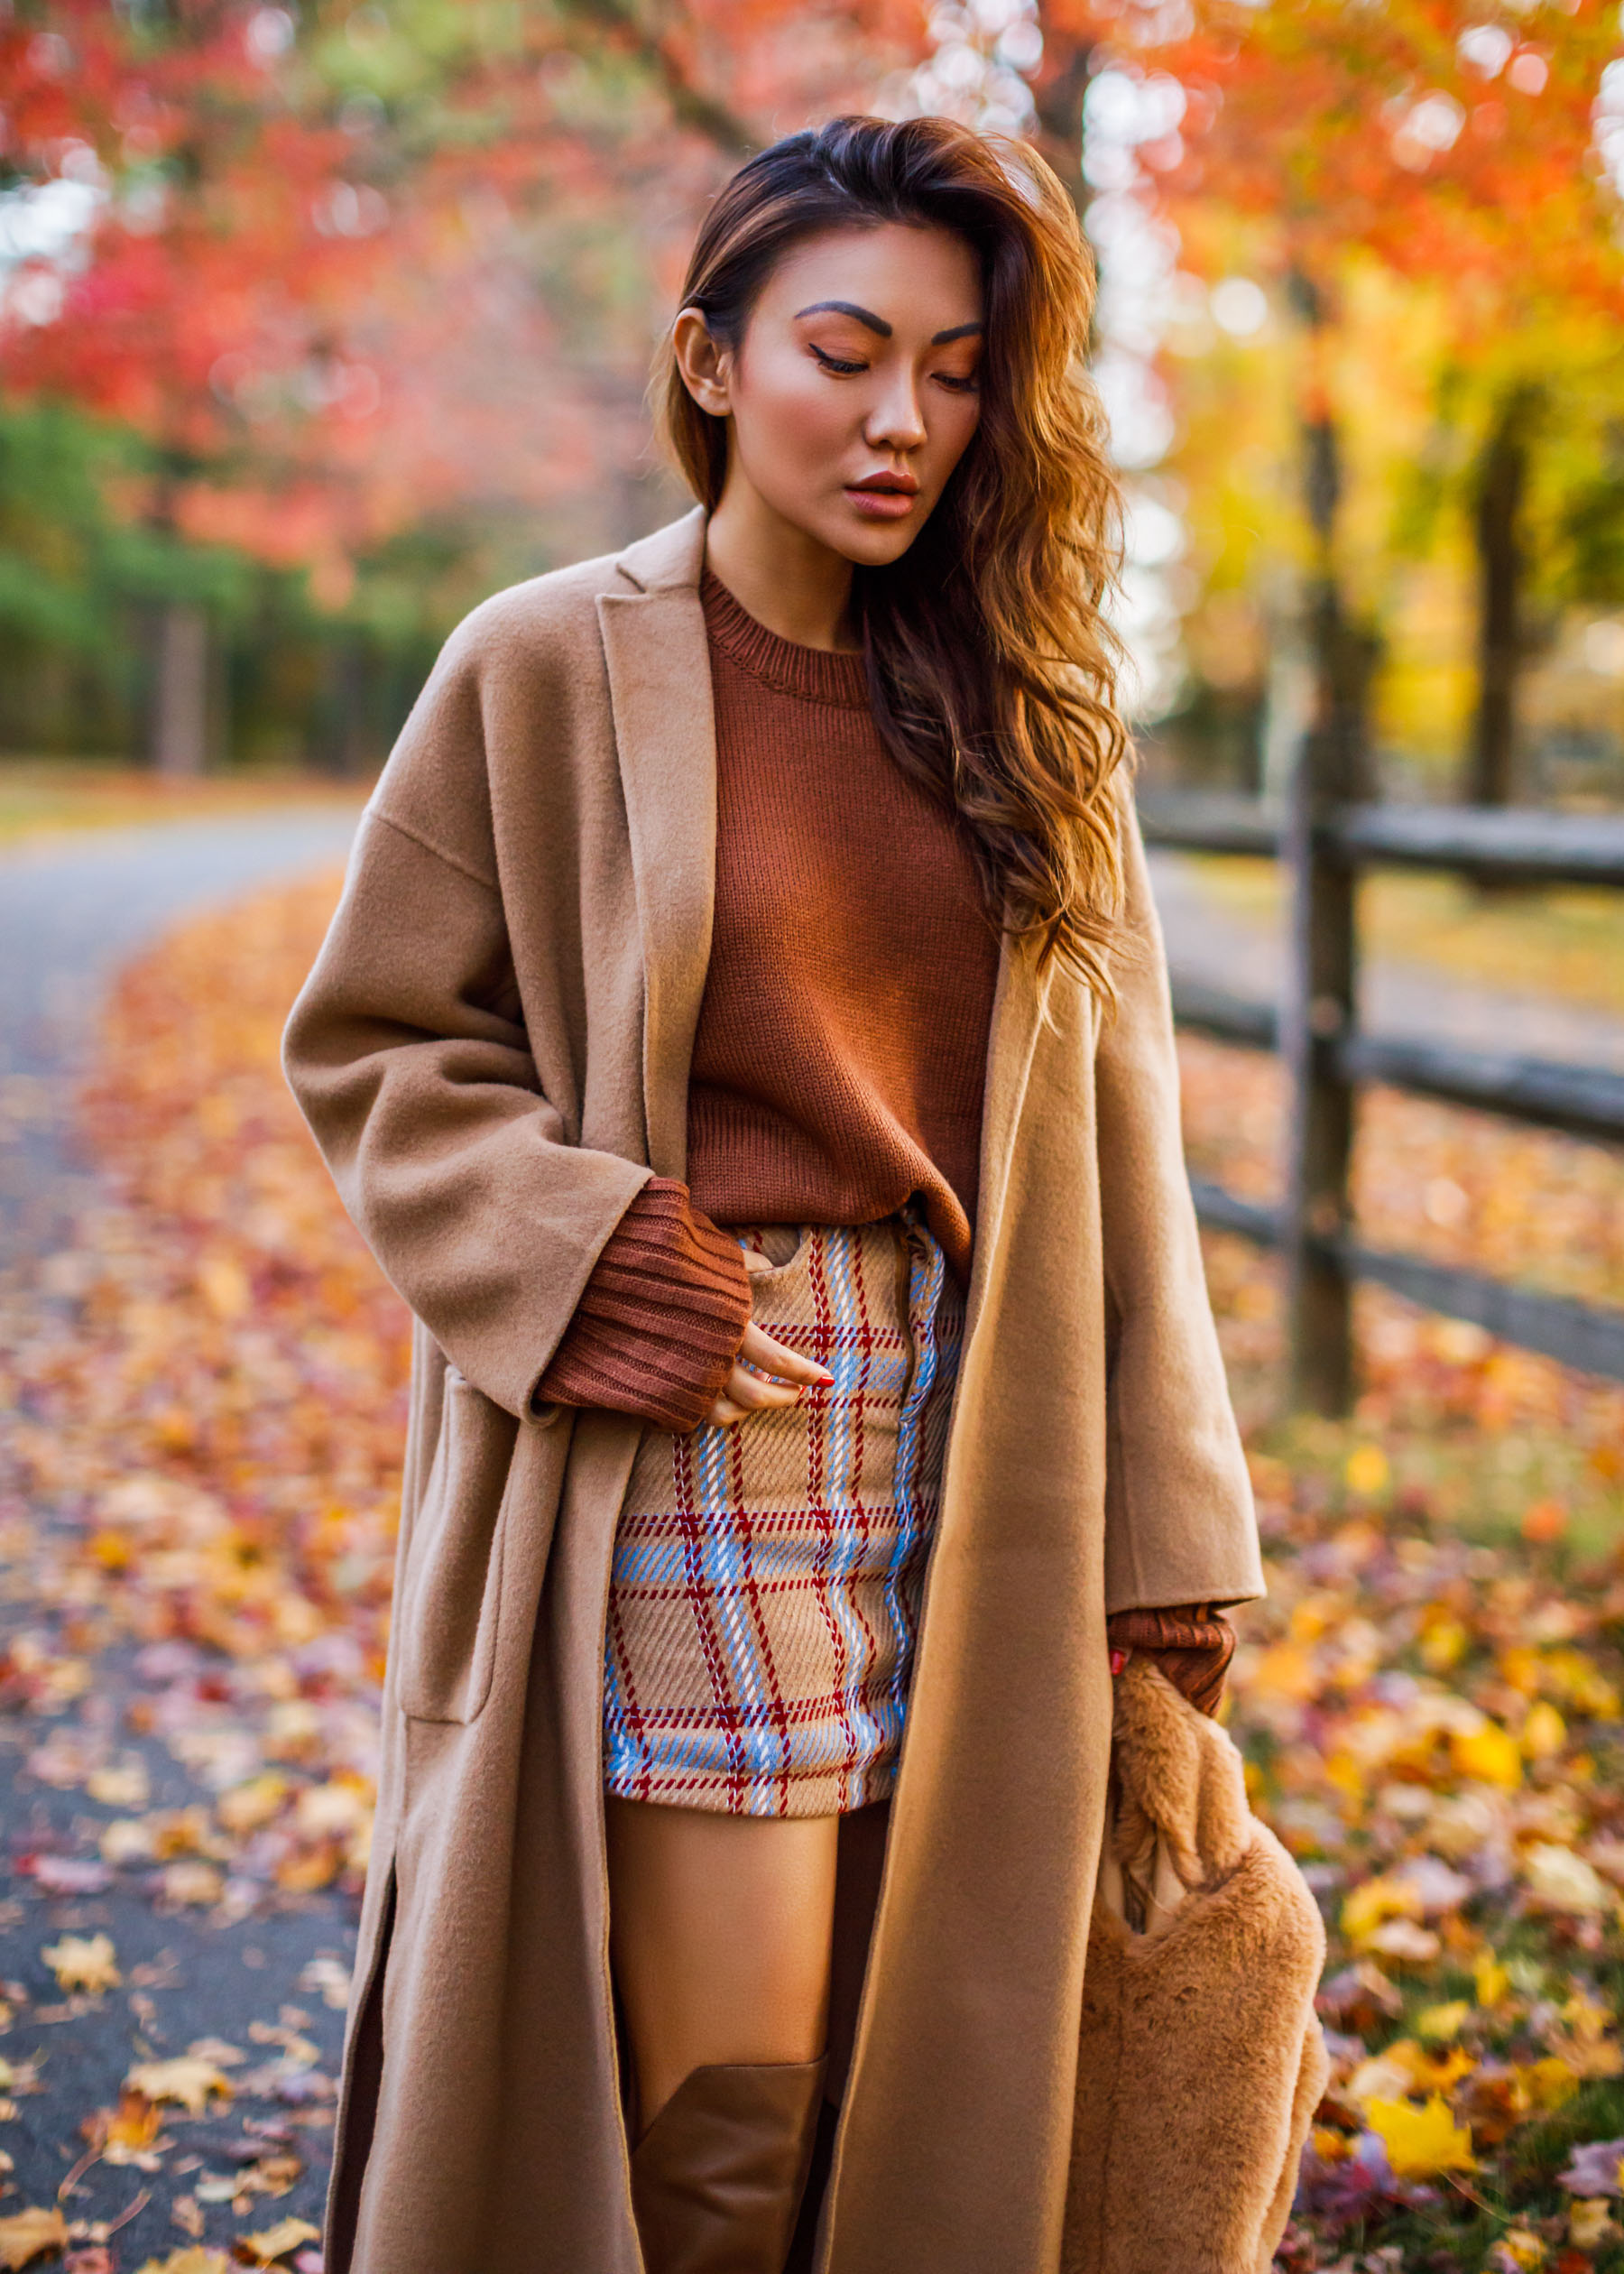 Plaid Mini Skirt with Over the Knee Boots and Camel Coat // Notjessfashion.com